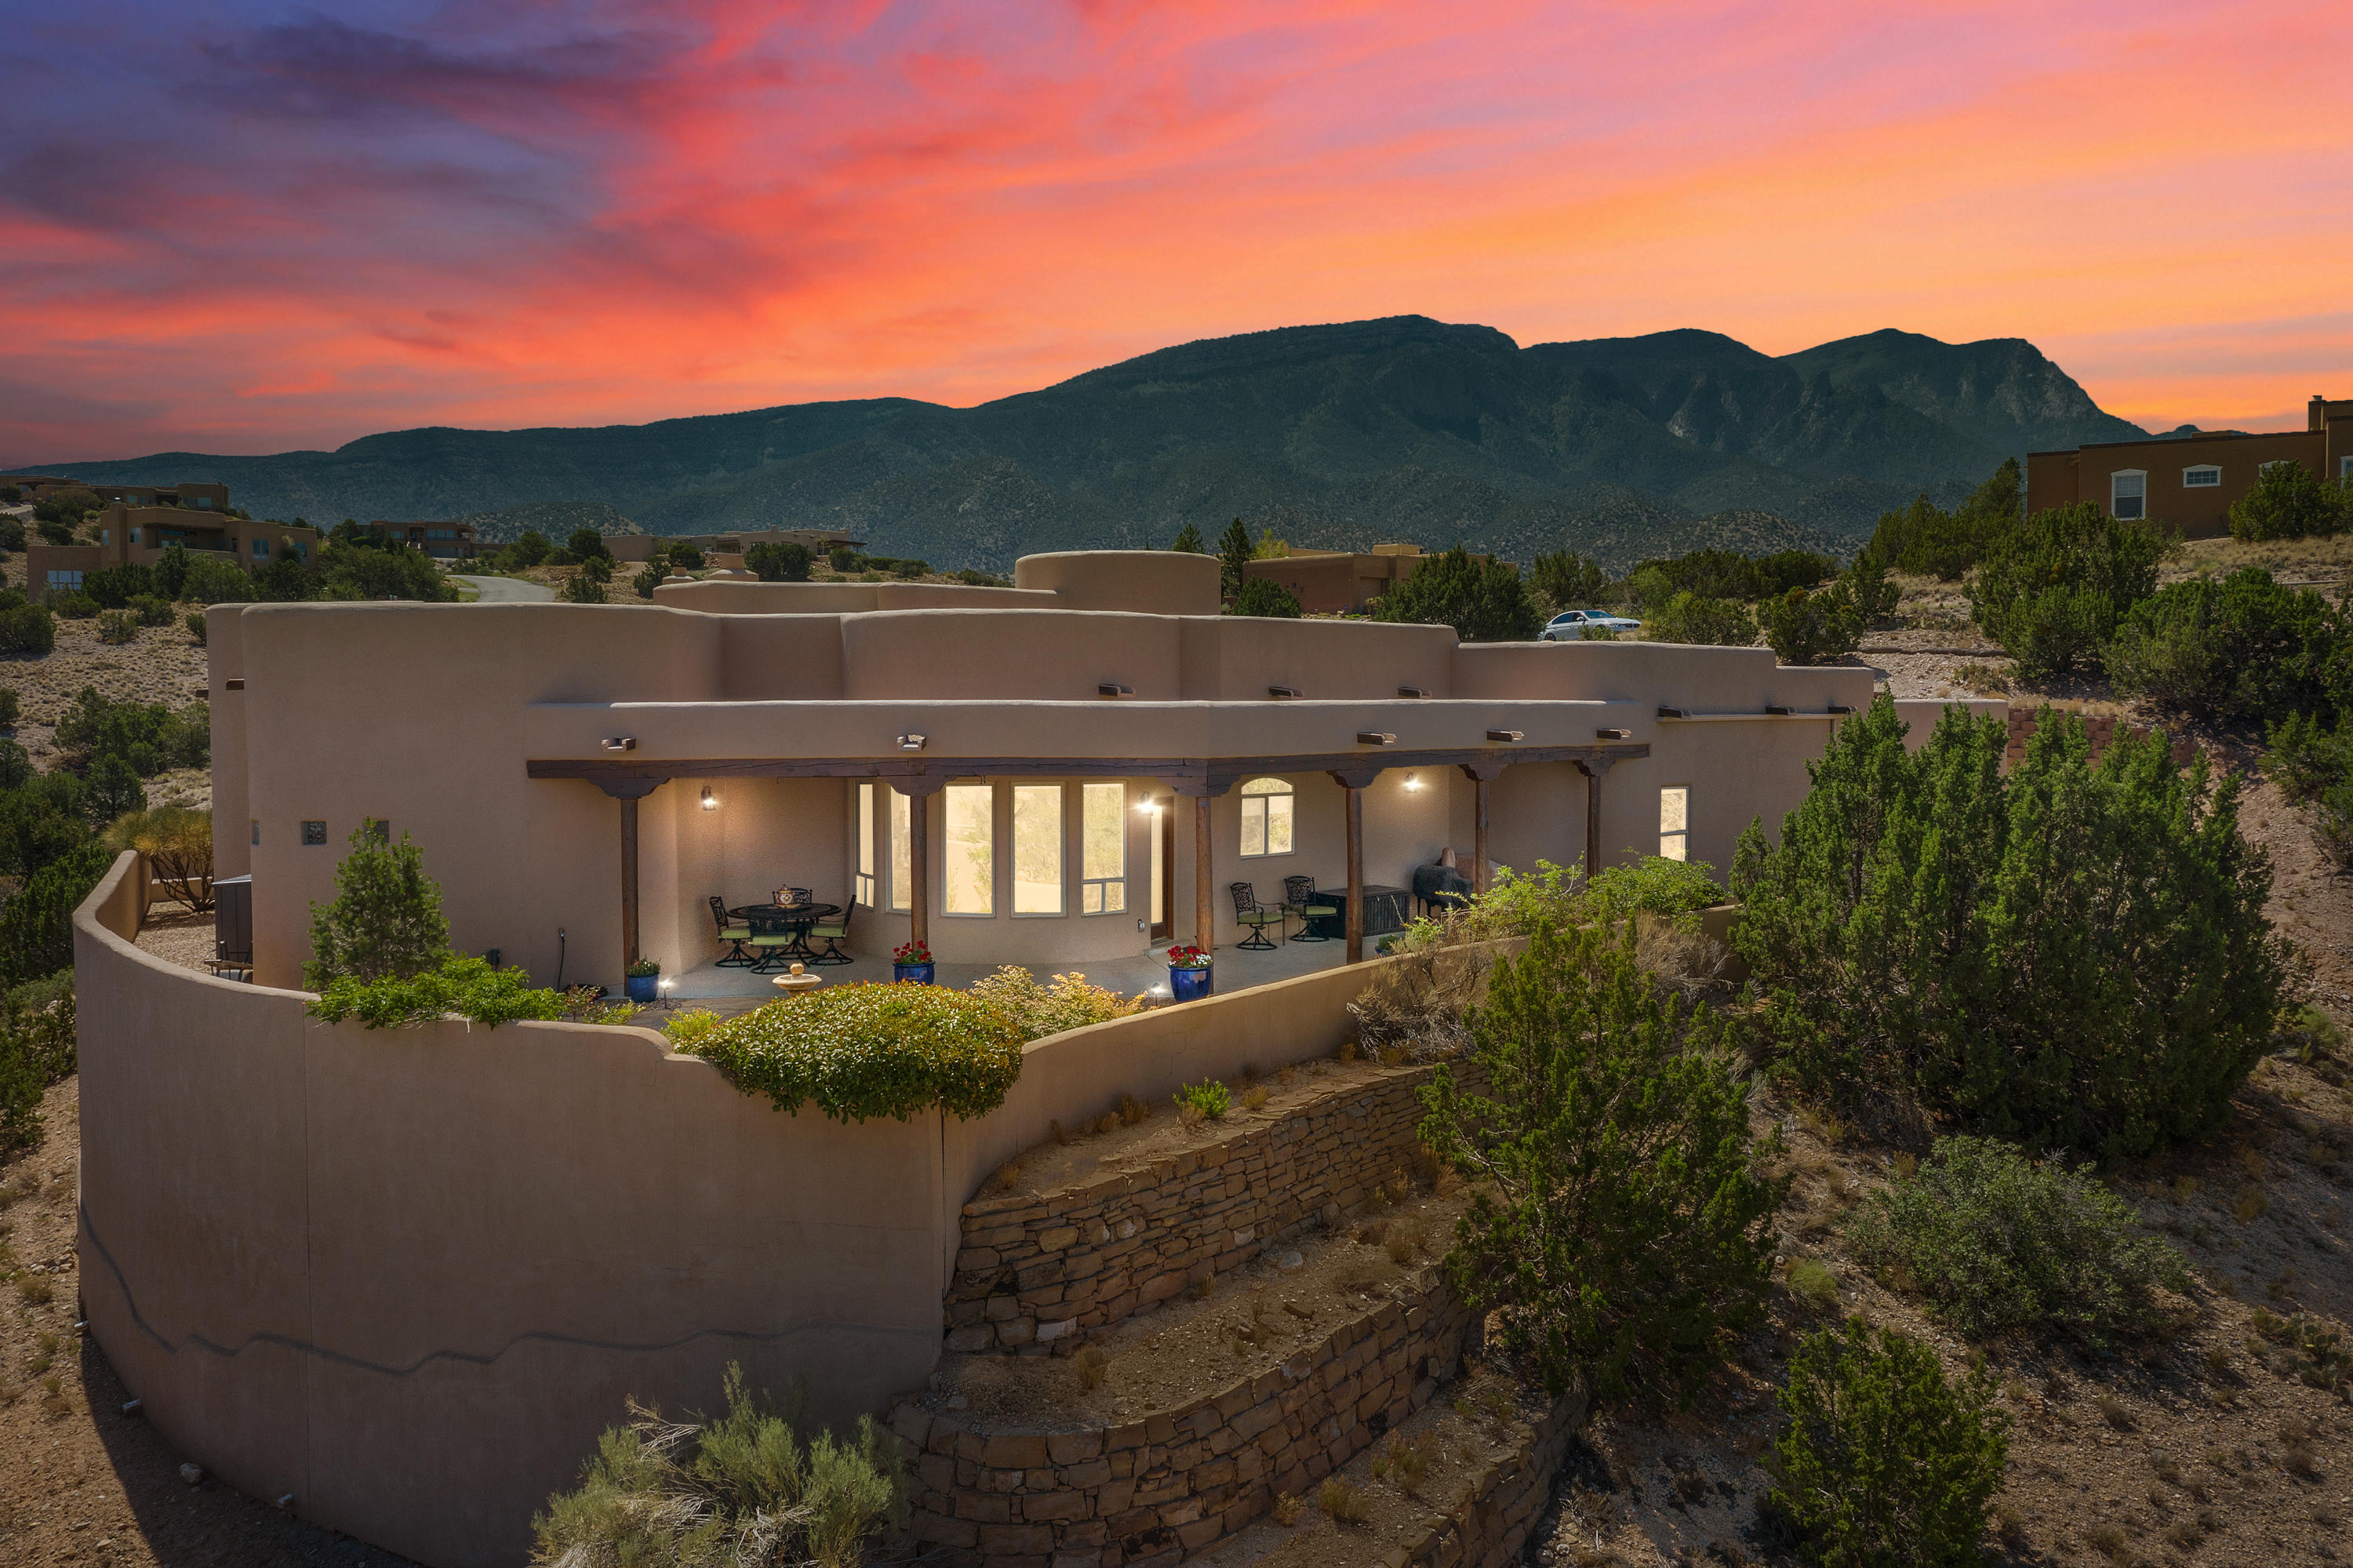 Nestled on a top in beautiful Placitas where the wild horses roam and the beautiful mountain skies abound, this masterpiece was constructed with the highest quality and thought!  Bringing to you 2806 sqft of wonderful 1 story living, 4 bedrooms, 2 full baths, 2 car garage on 1.4 acres of land.  14', 12', 11', 10', 9'  tall ceilings, radiant floor heating, and a good sized back yard for entertaining and sunsets.  This home will delight the pickiest of buyers!! Welcome to Placitas and tranquil living =)49 min to Downtown Santa Fe, 26 min to downtown Abq. and 7 min/ 4.3mi to I25.